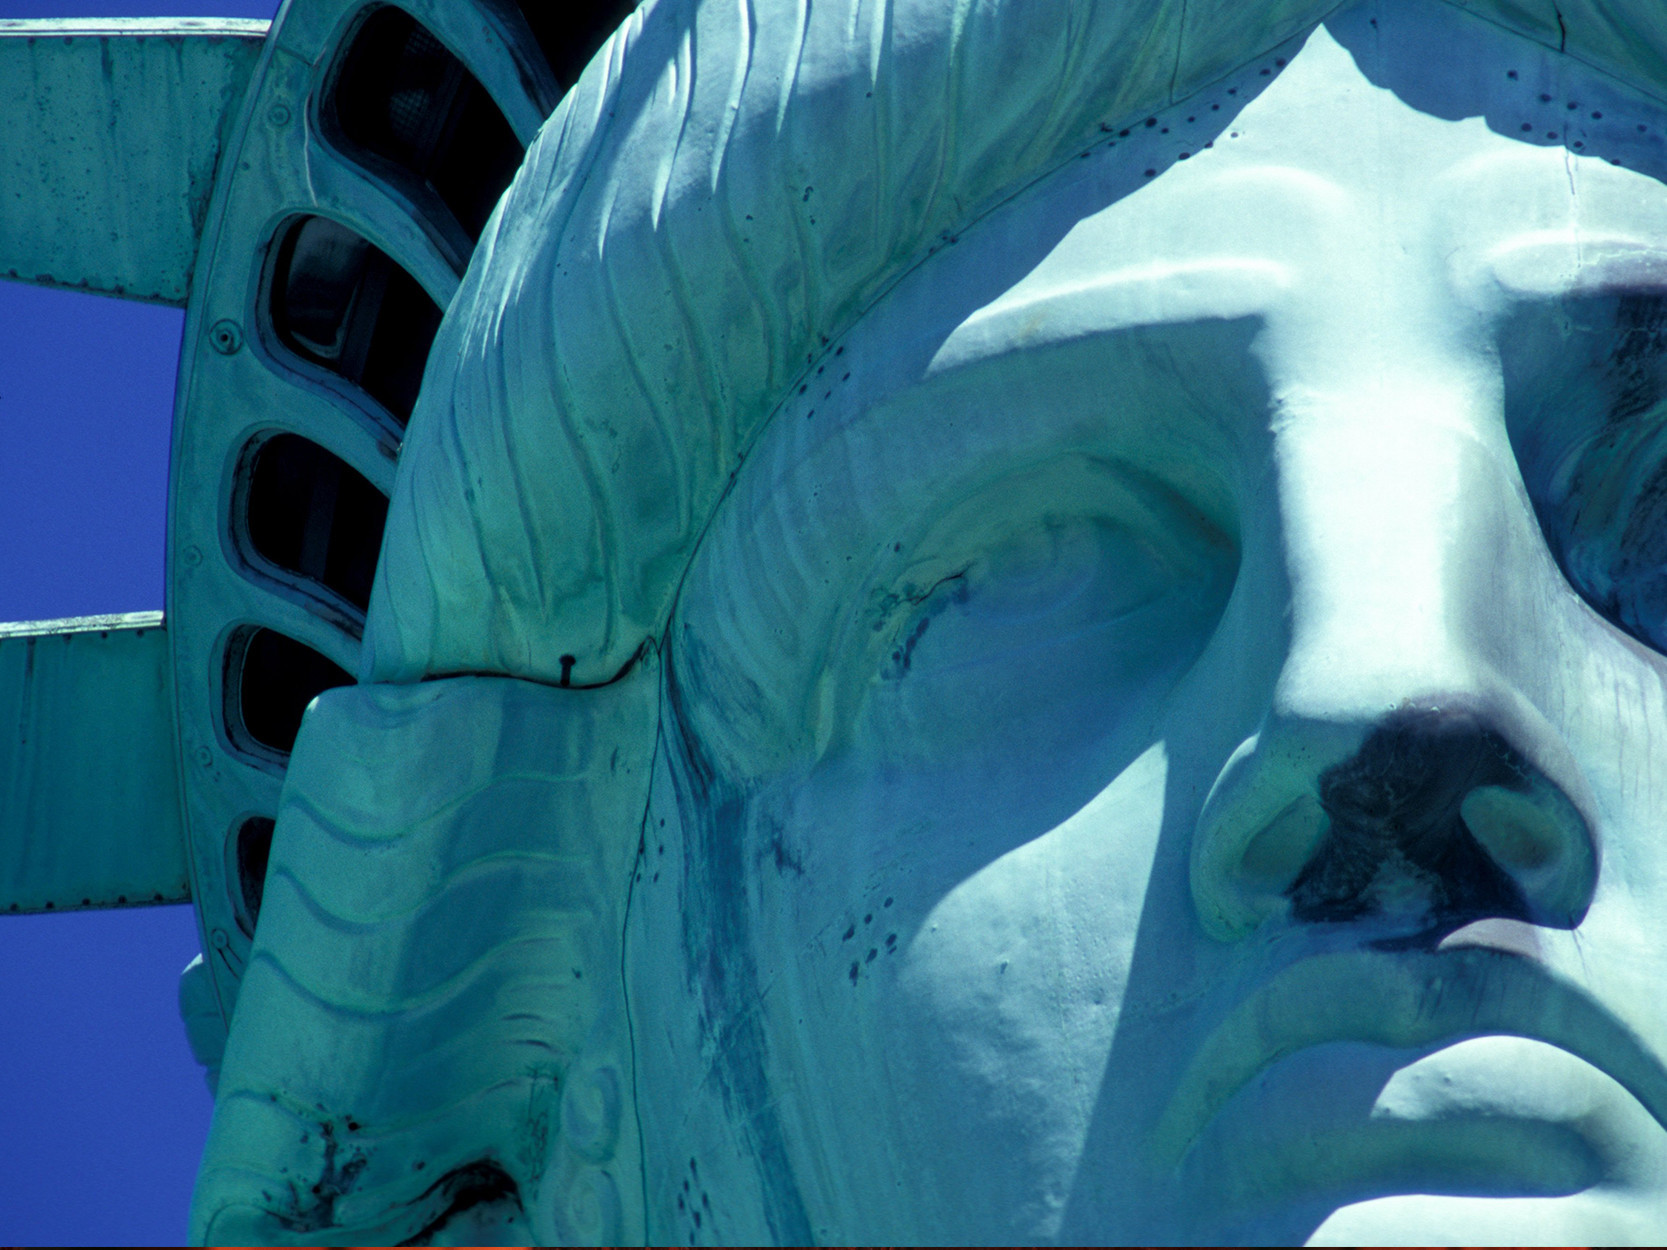 Statue of Liberty poem was only supposed to welcome white immigrants 'from Europe,' Cuccinelli says